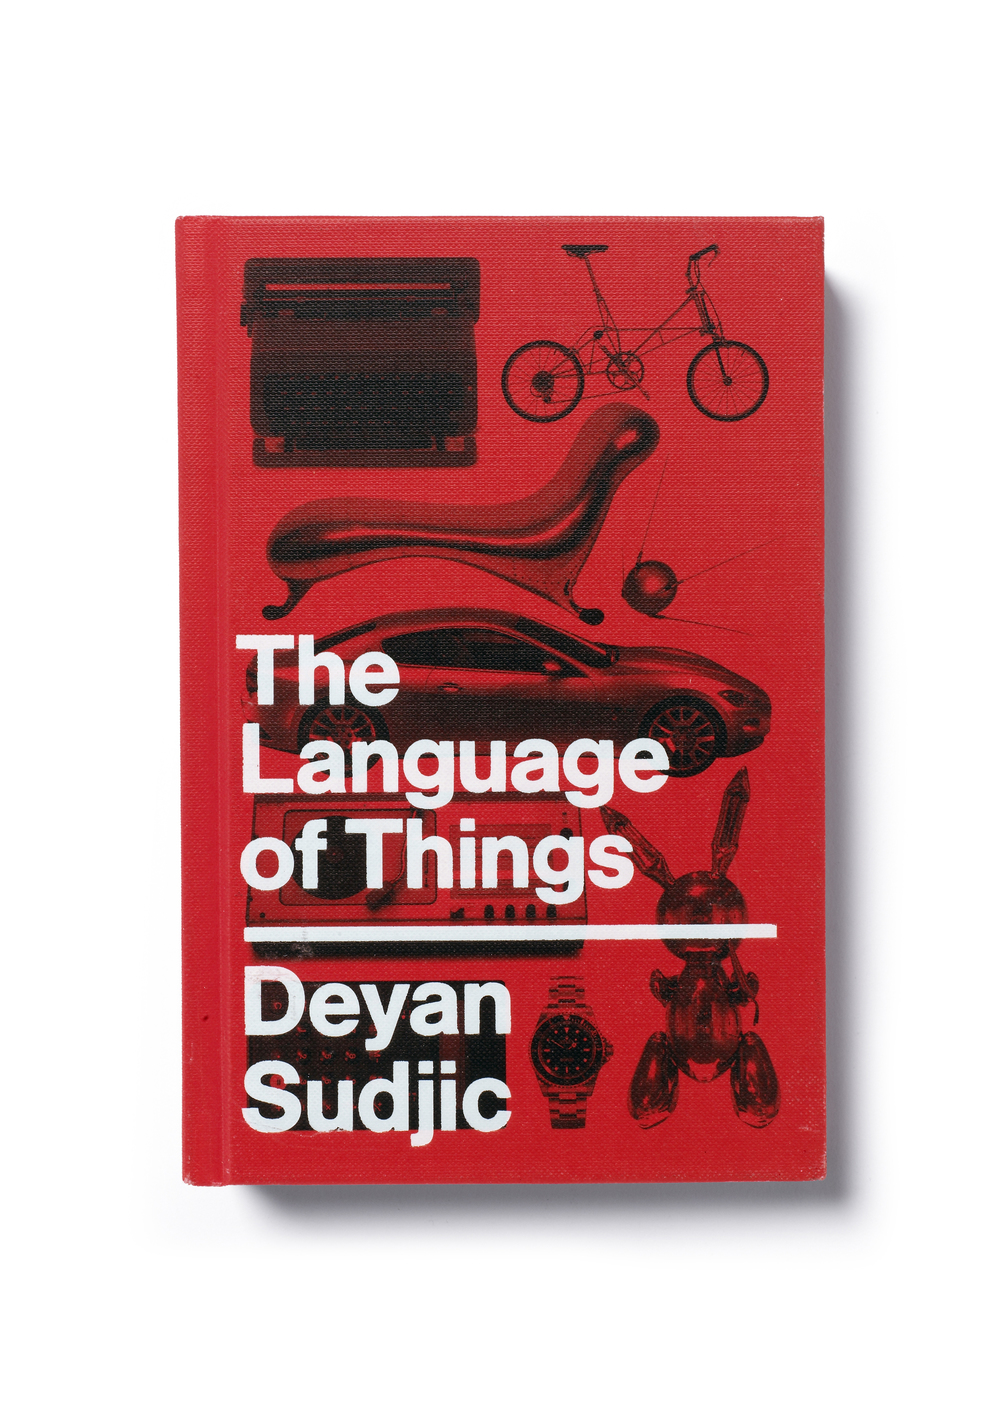 The Language of Things by Deyan Sudjic - Art Direction: Jim Stoddart Design: Yes Studio